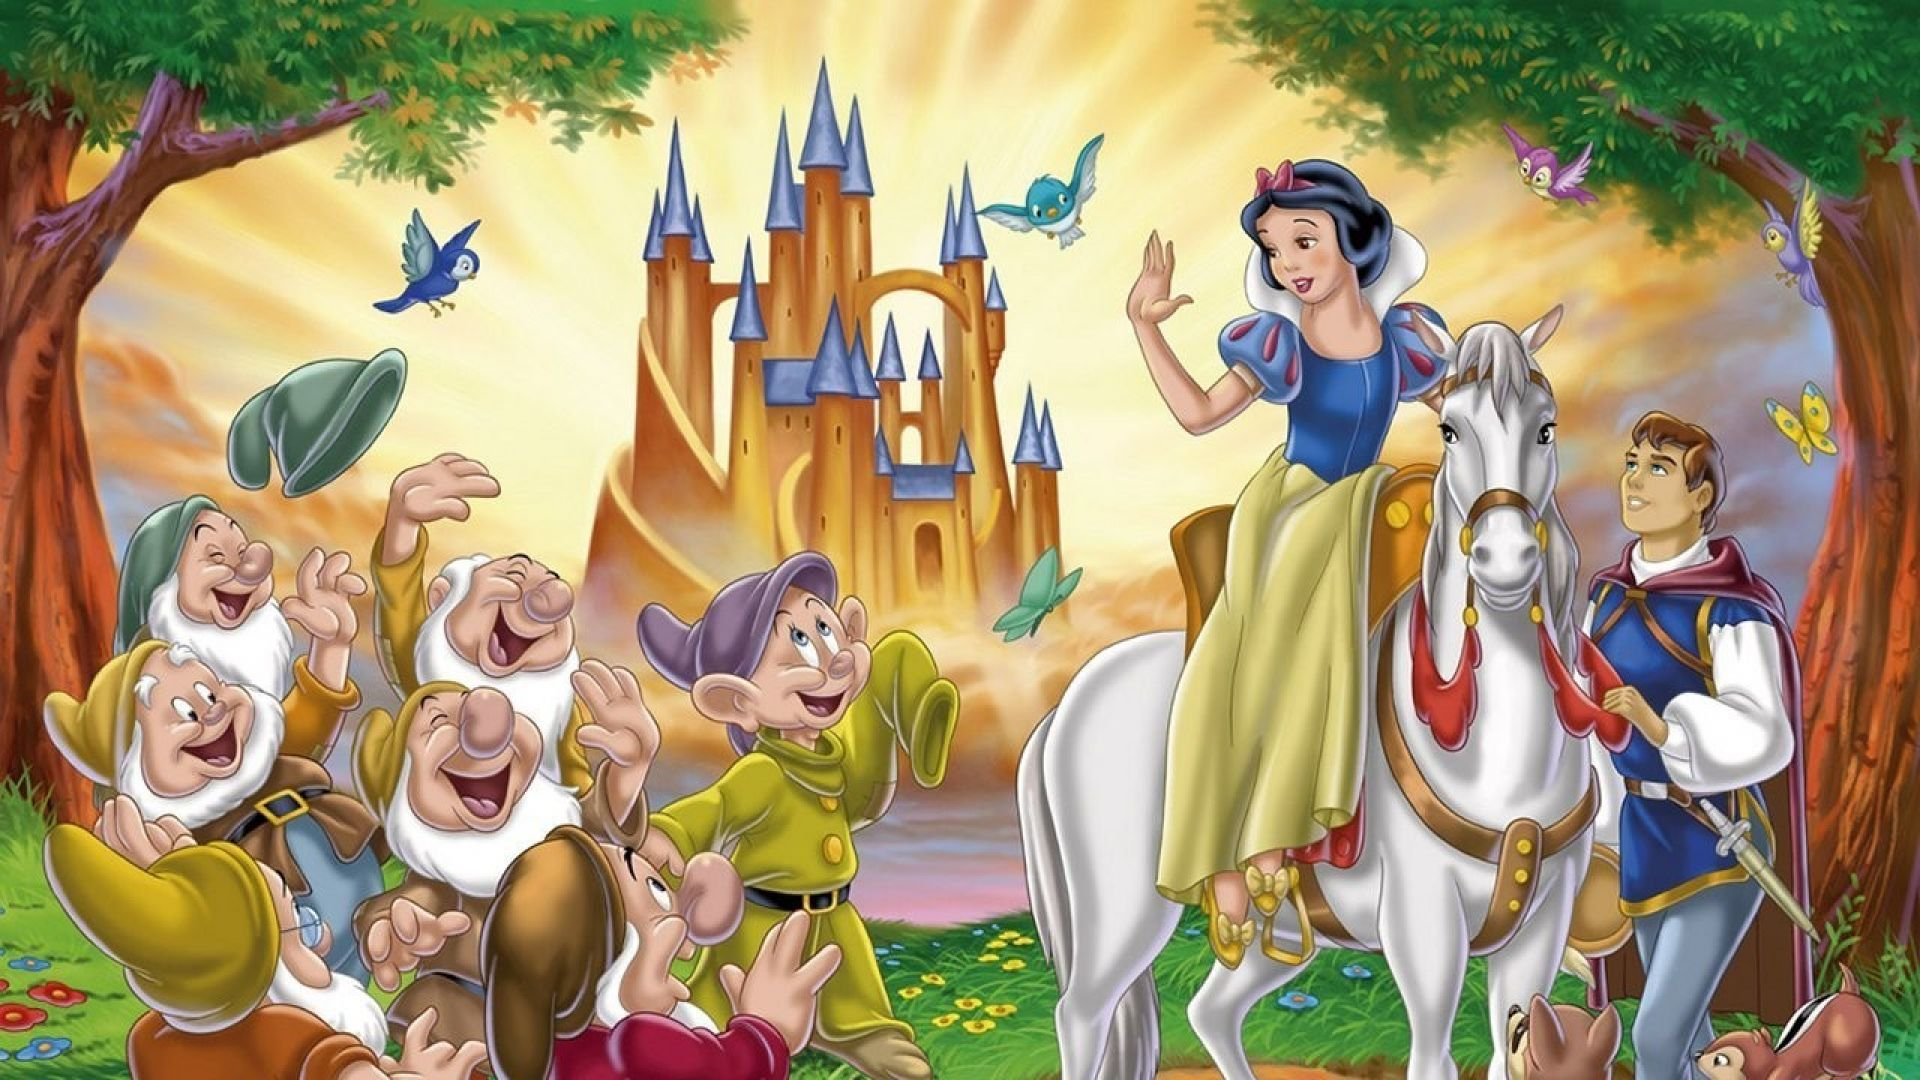 Snow white and seven dwarfs hentai pic nackt video